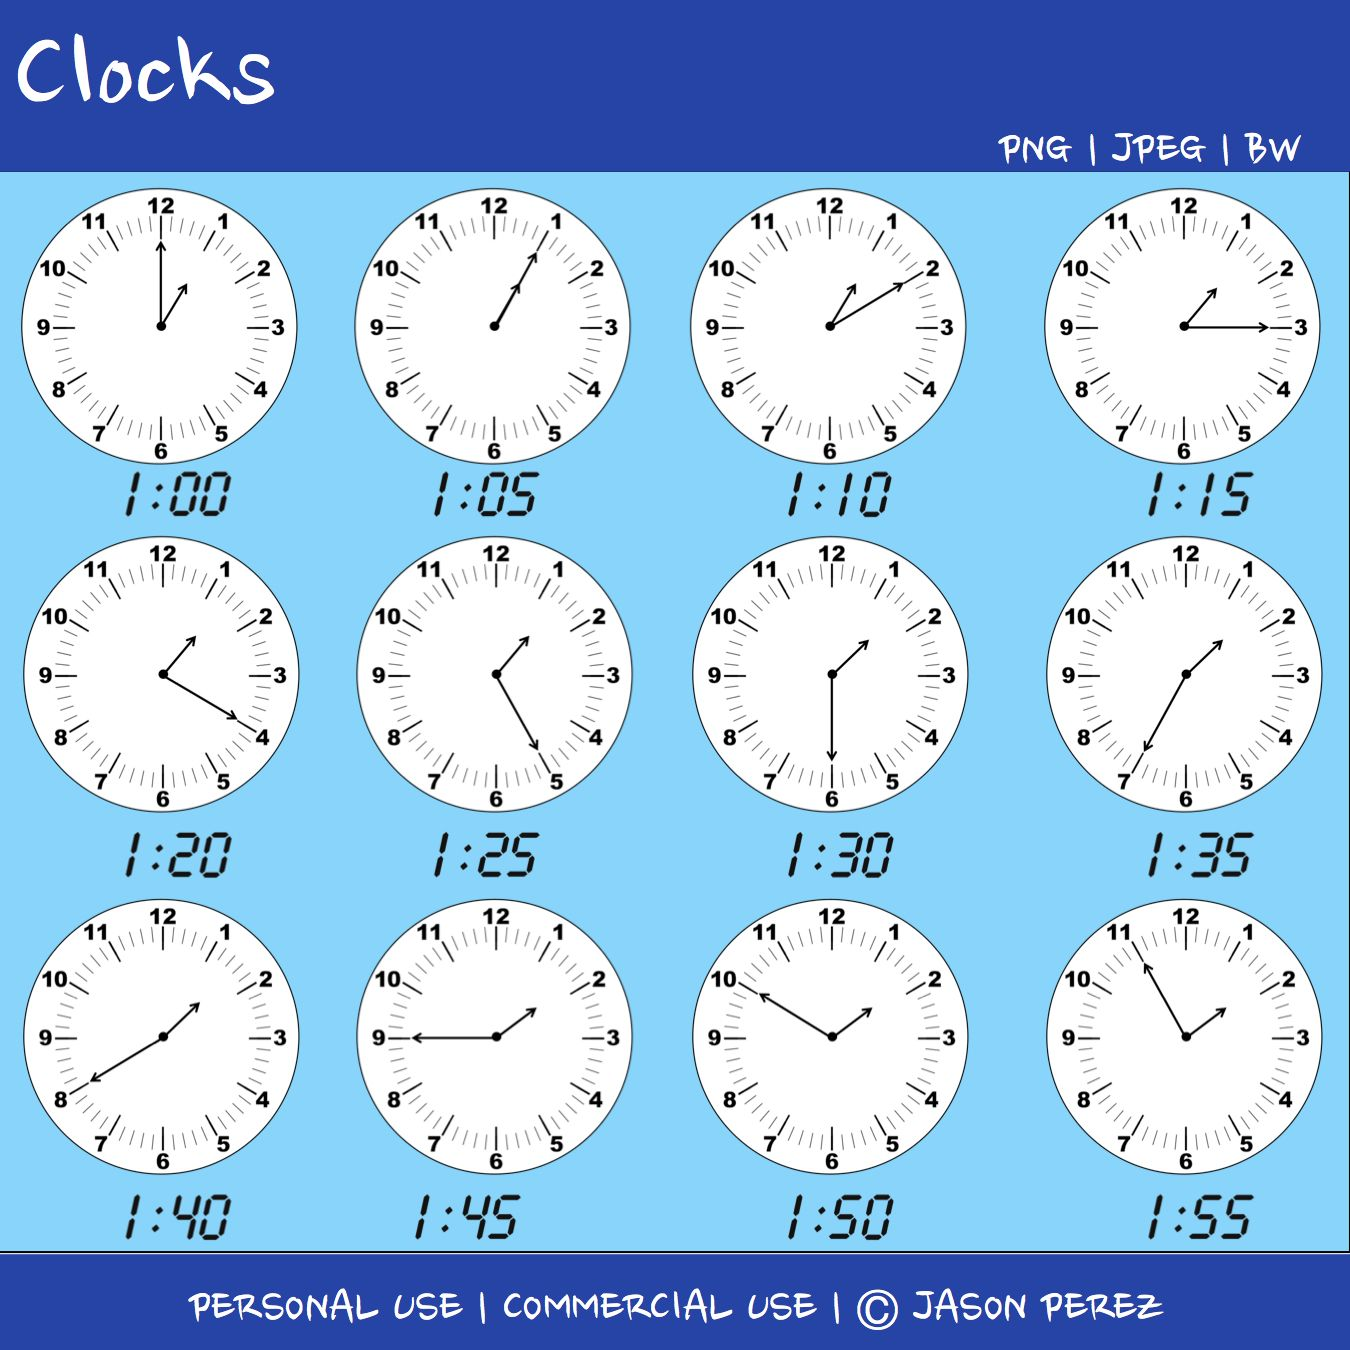 144 clock images plus 144 matching digital time images to the ...